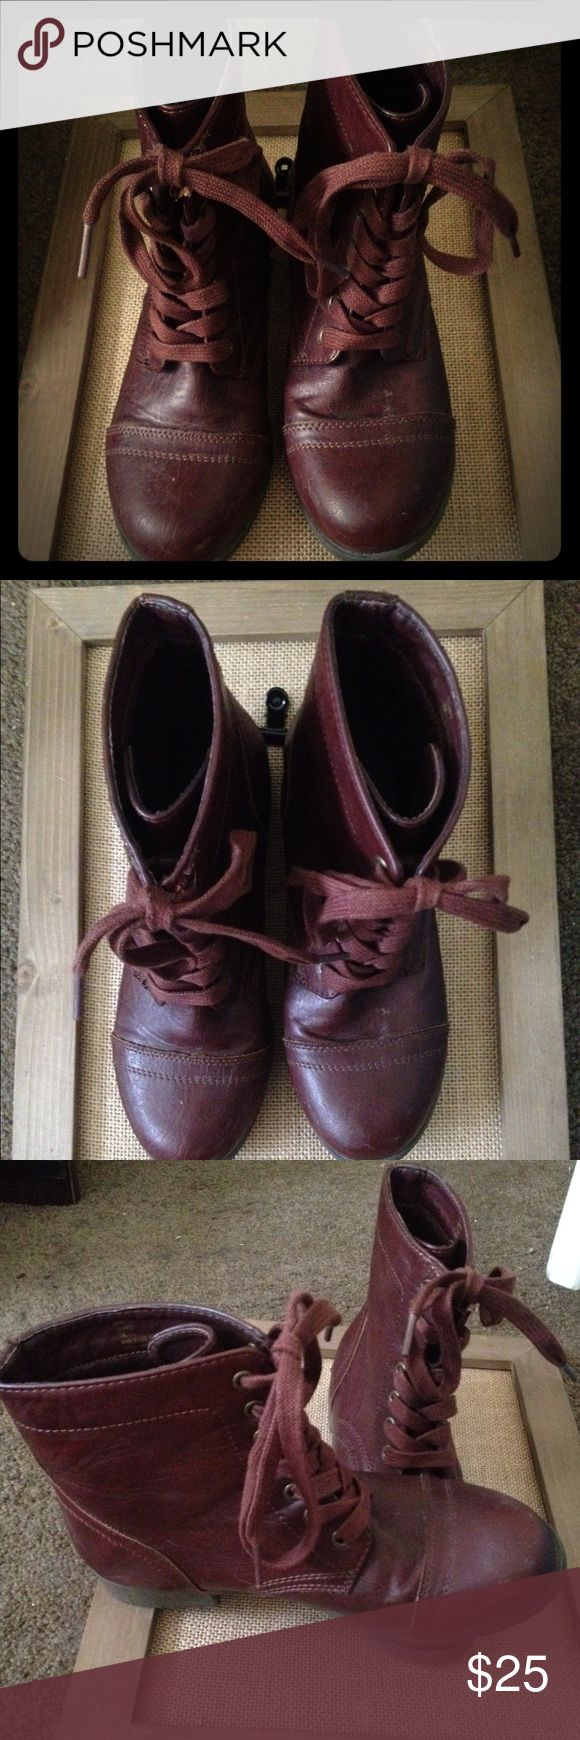 Rampage combat boots. Dark purple/ maroon lace up Rampage combat boots. Dark purple/ maroon lace up. Small tare by upper lace, but you can't see it when they lace up. Rampage Shoes Combat & Moto Boots